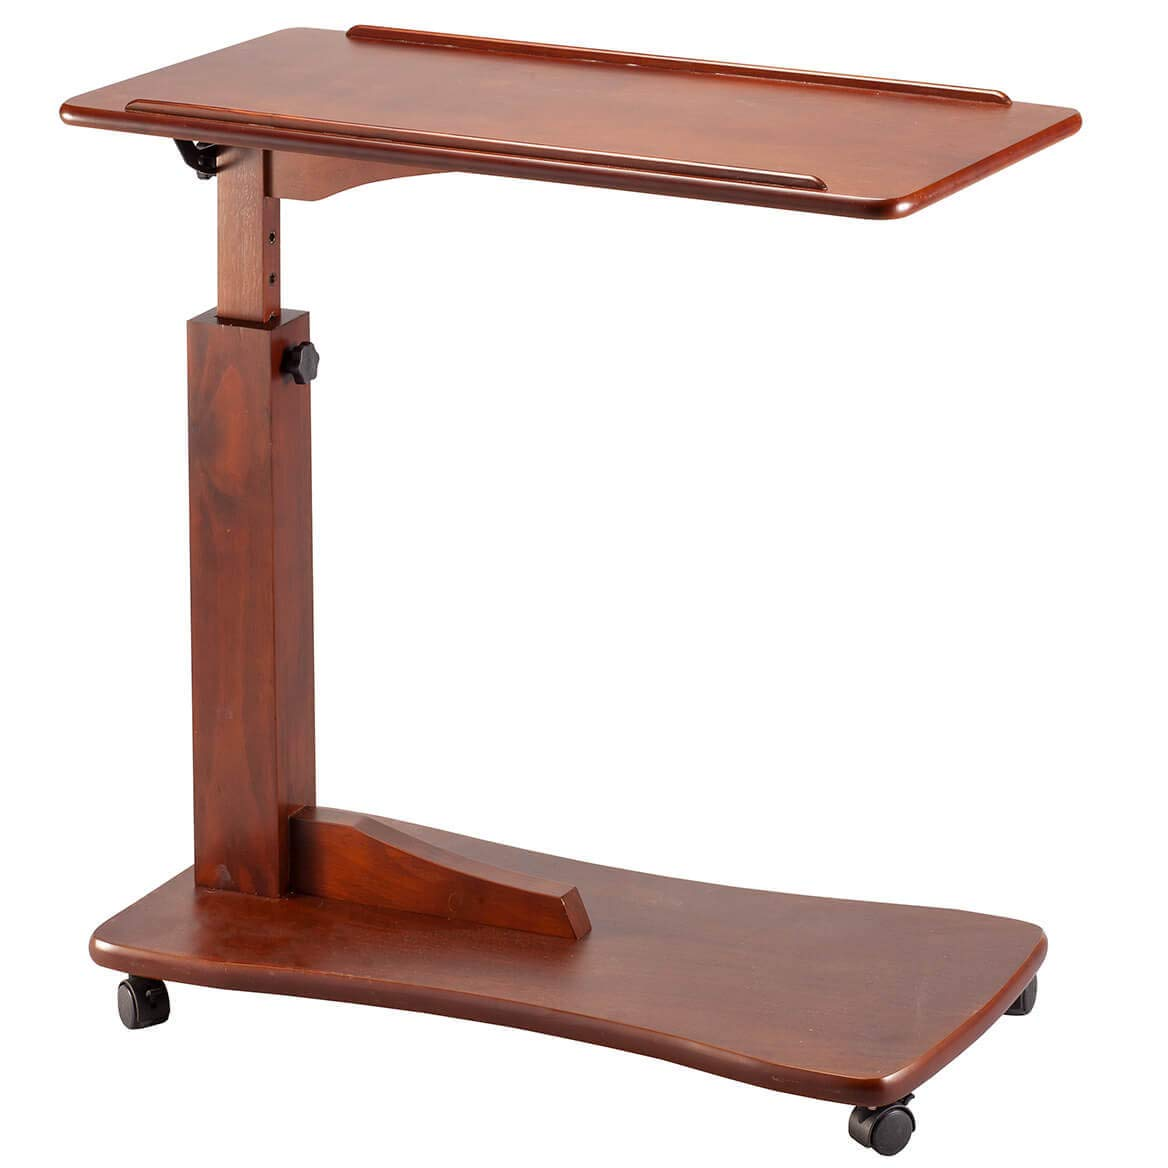 OakRidge Height Adjustable Bedside Tray Table with Wheels, Walnut